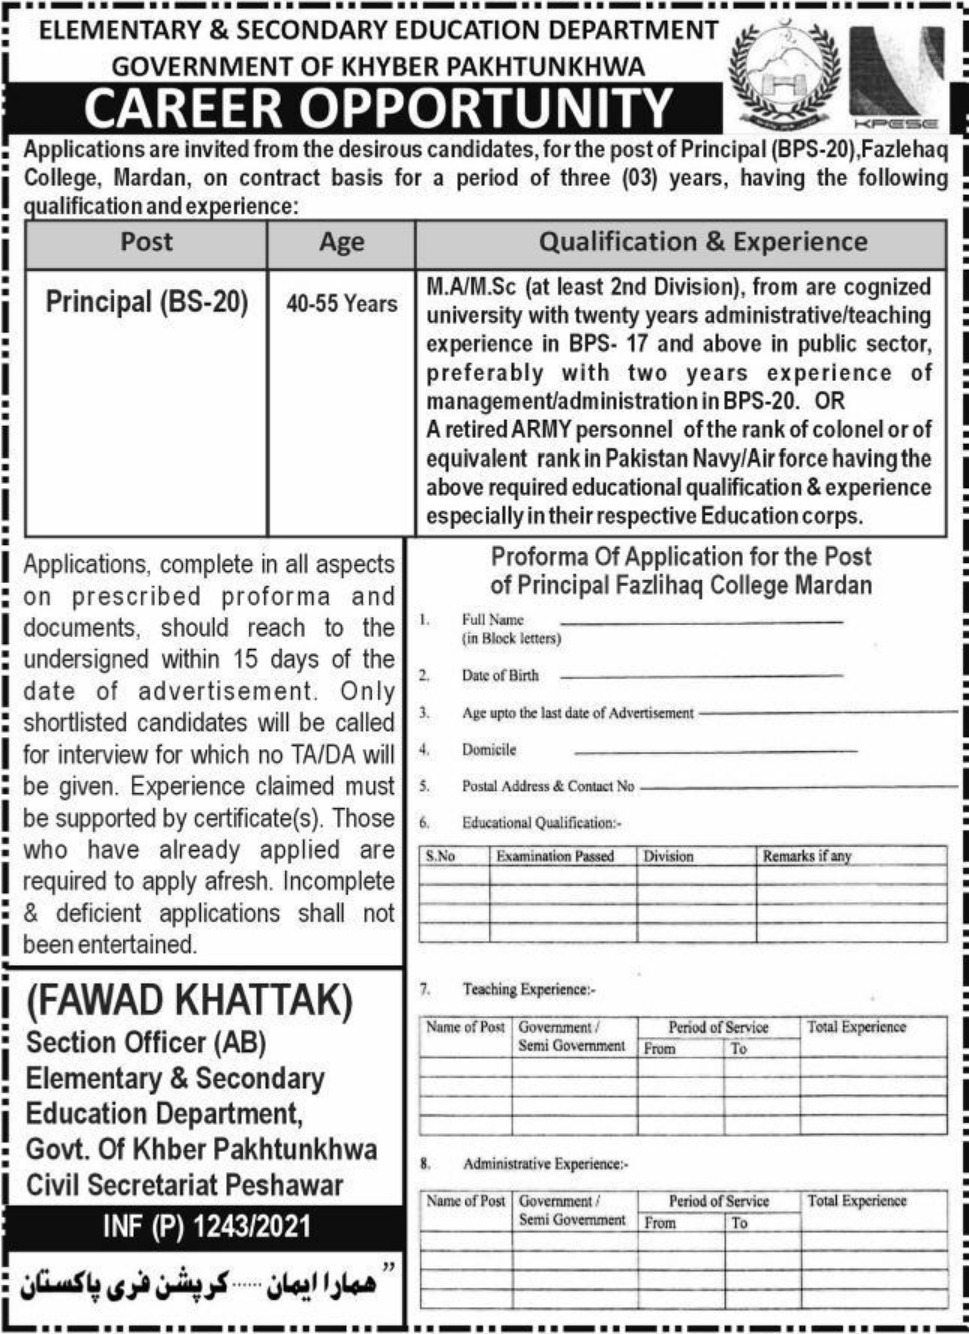 Elementary & Secondary Education Department ESED KPK Jobs March 2021